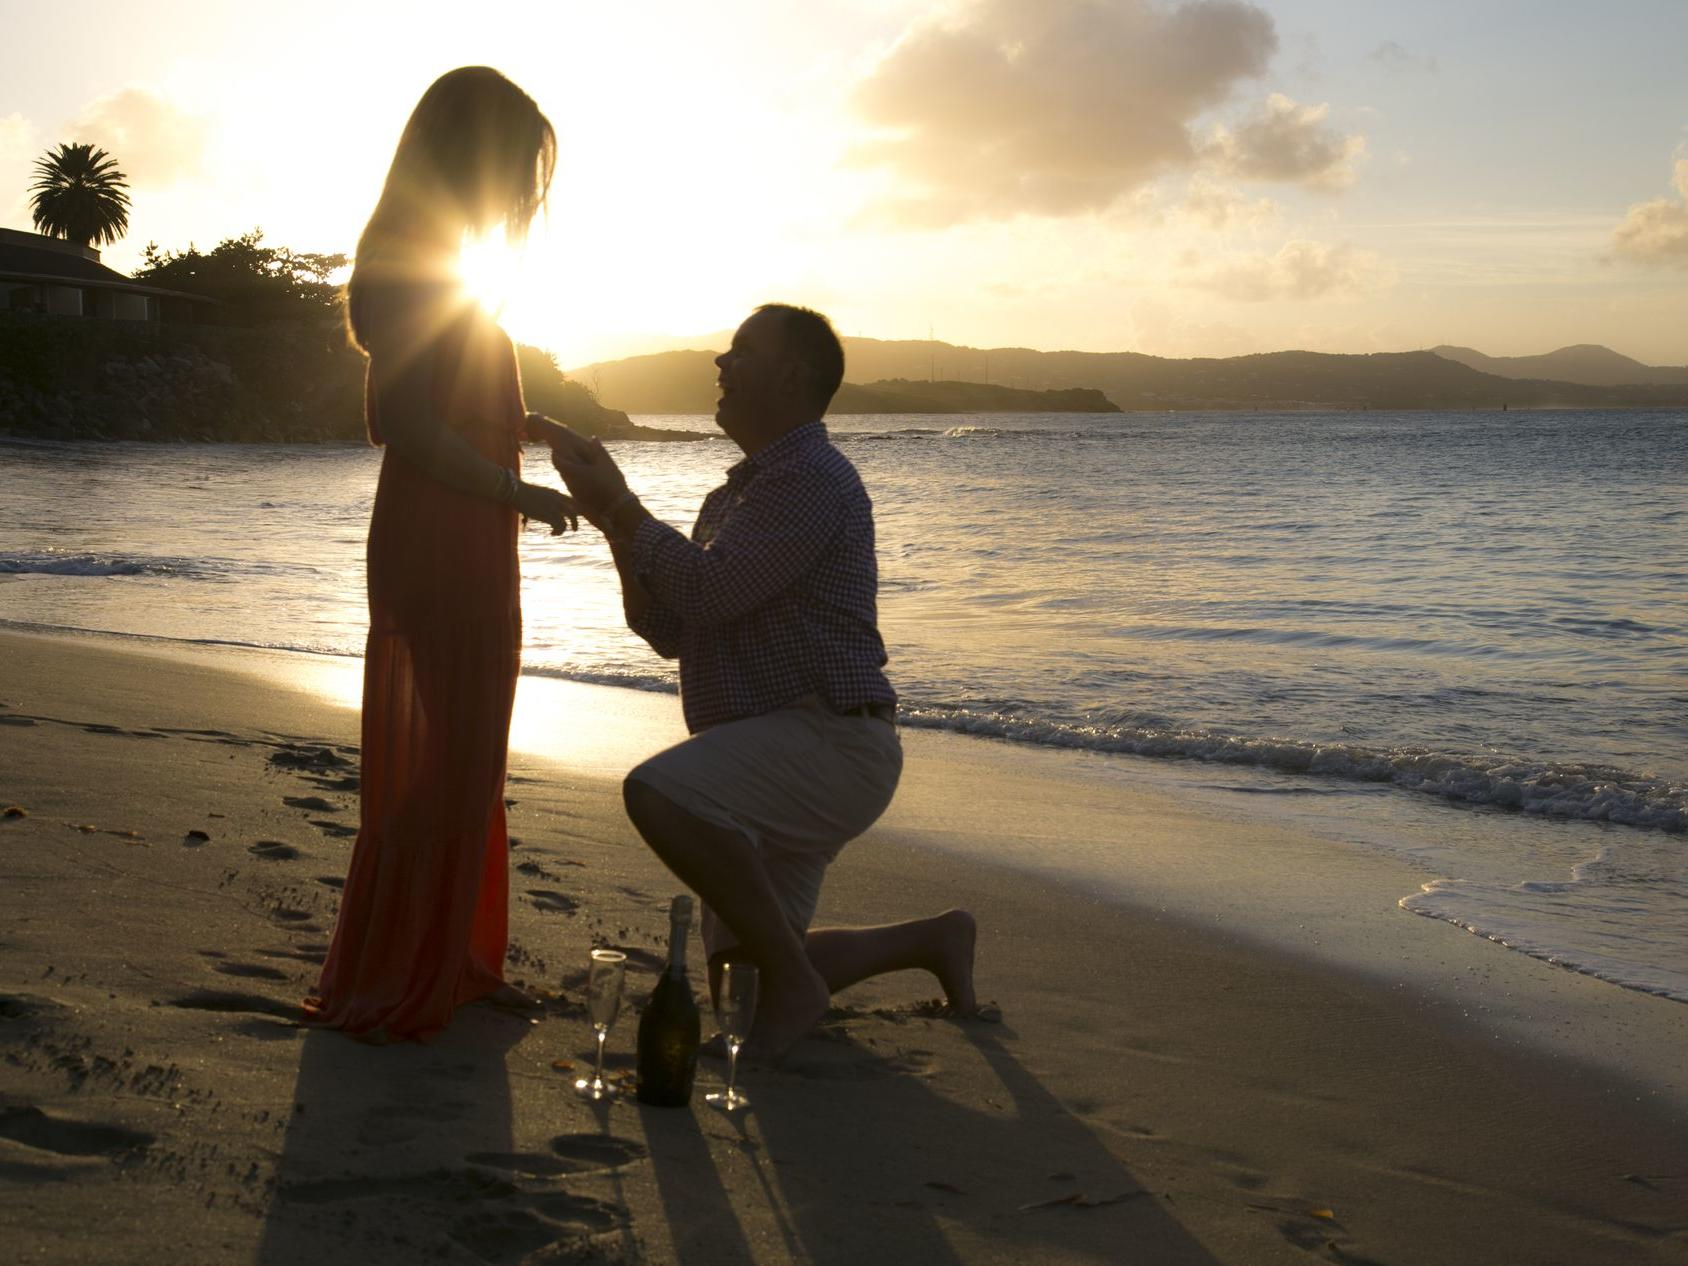 Man Proposing To Woman On Beach at Sunset